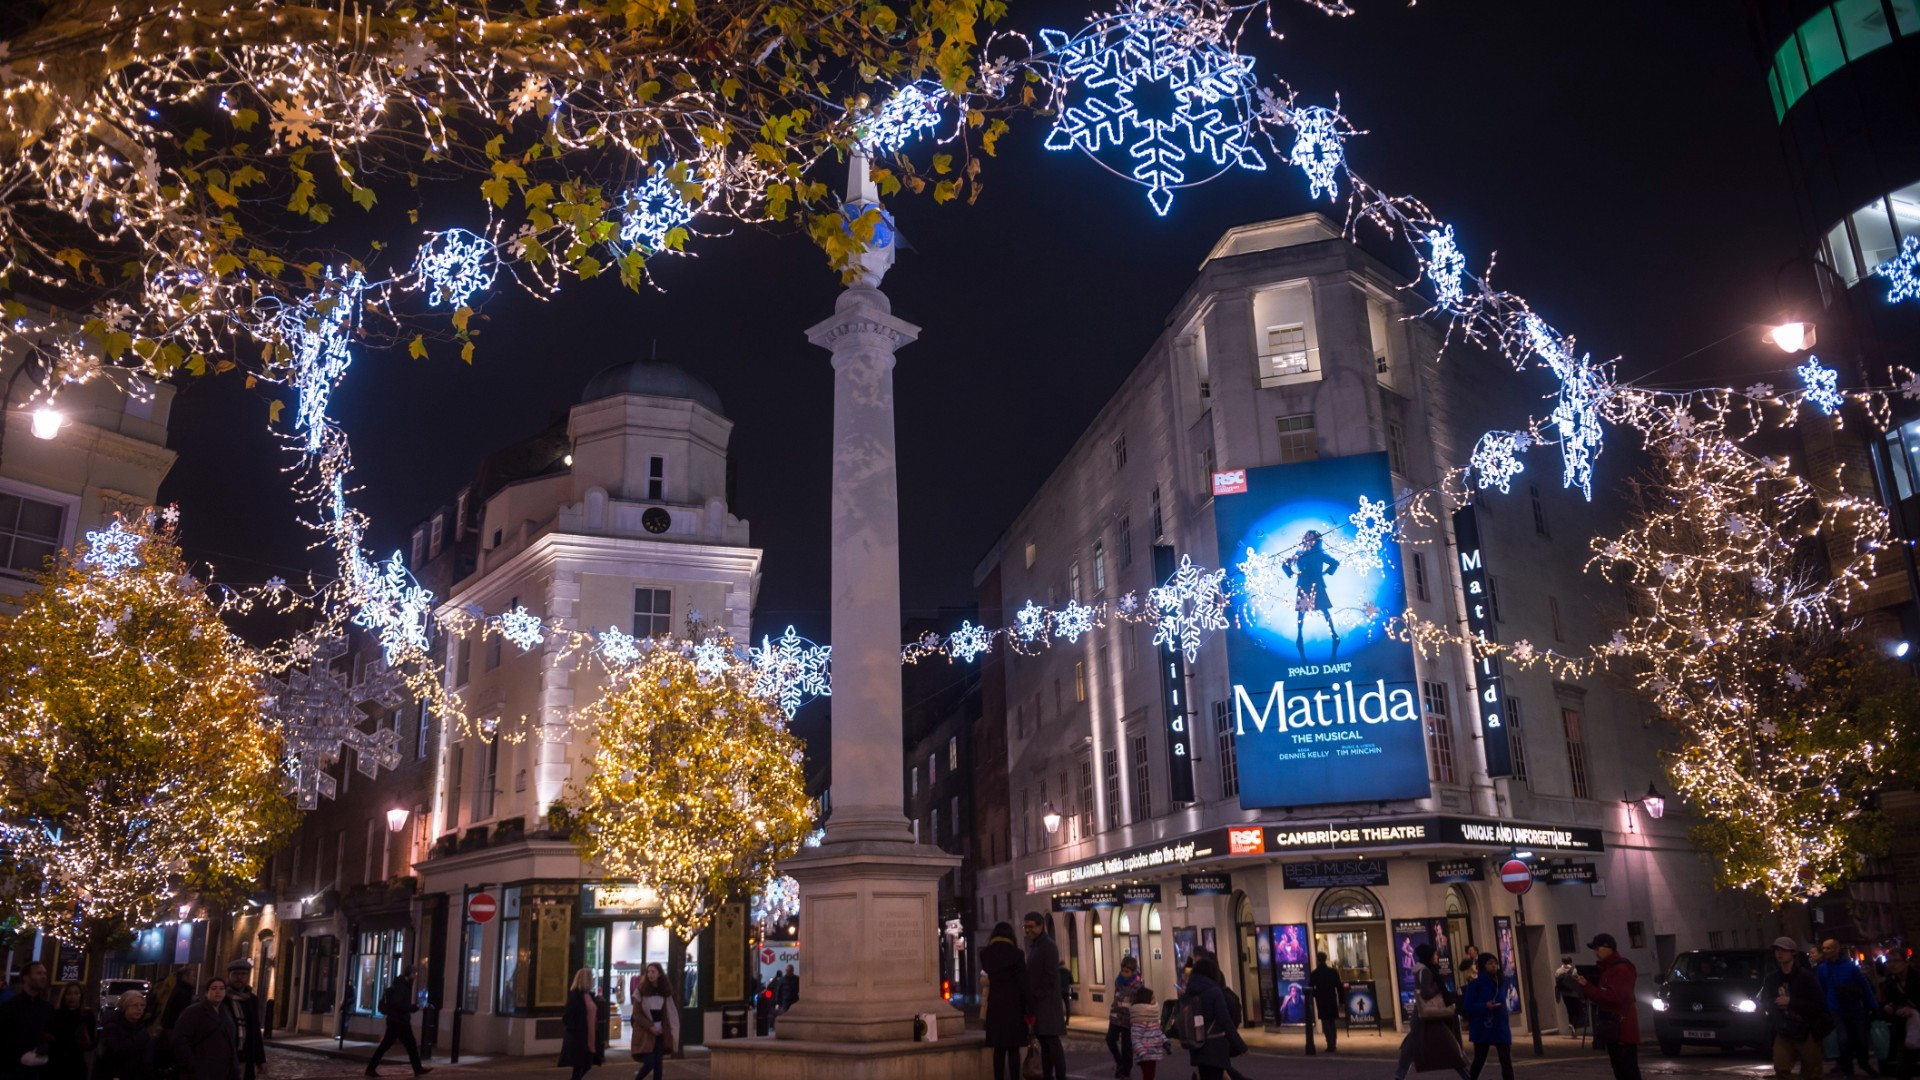 London theatres could be fully reopened by Christmas